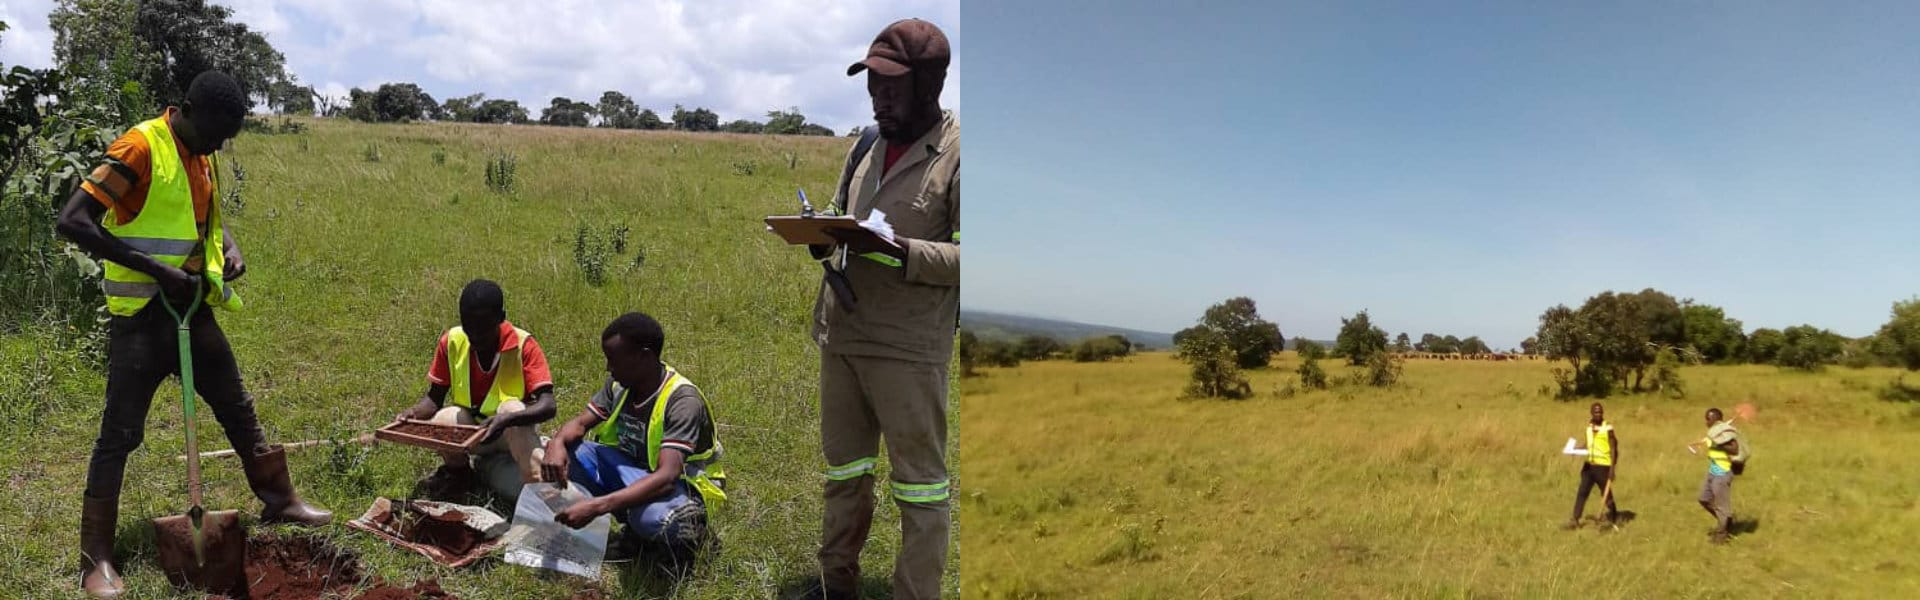 Mining exploration on site in Tanzania for Adavale Resources